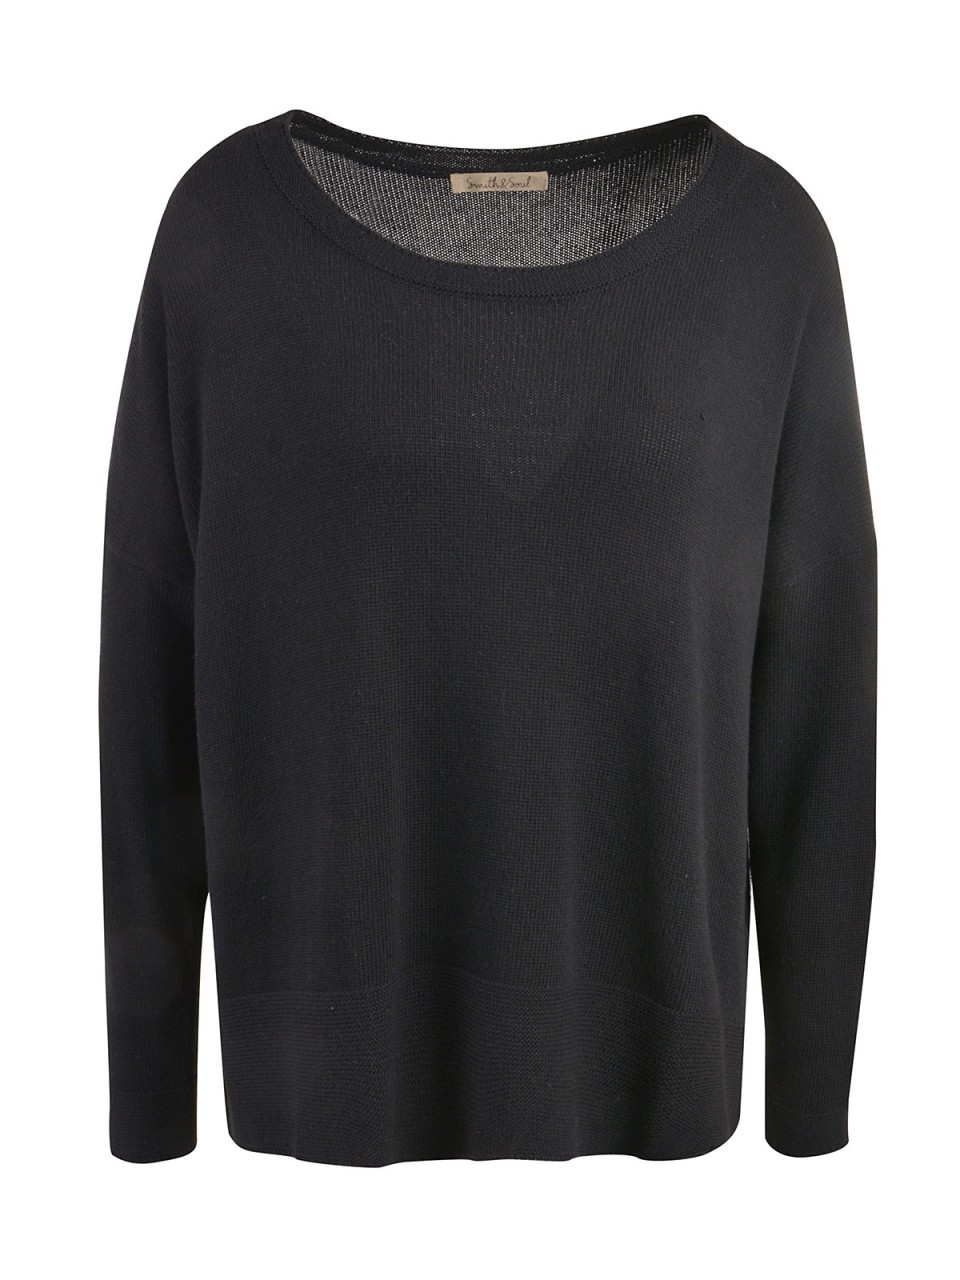 smith-amp-soul-damen-pullover-schwarz